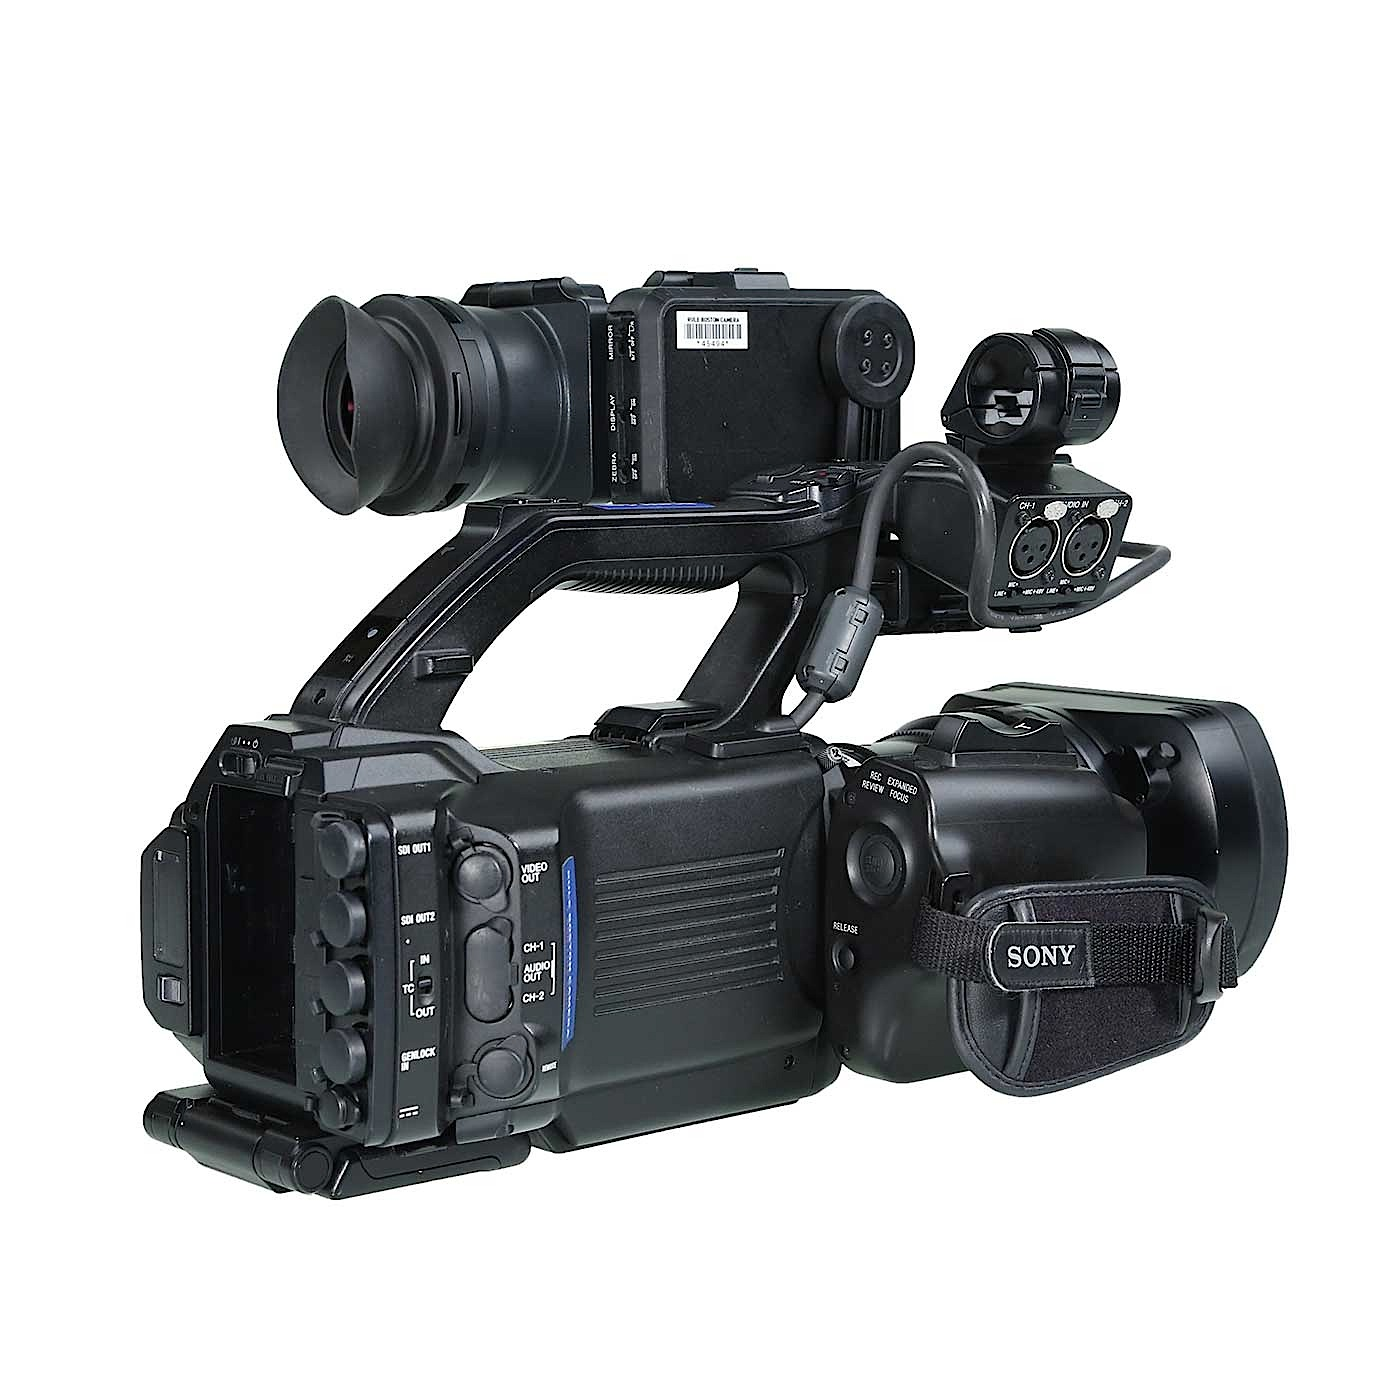 Sony Pmw 300 Xdcam Ex Camcorder Rule Camera